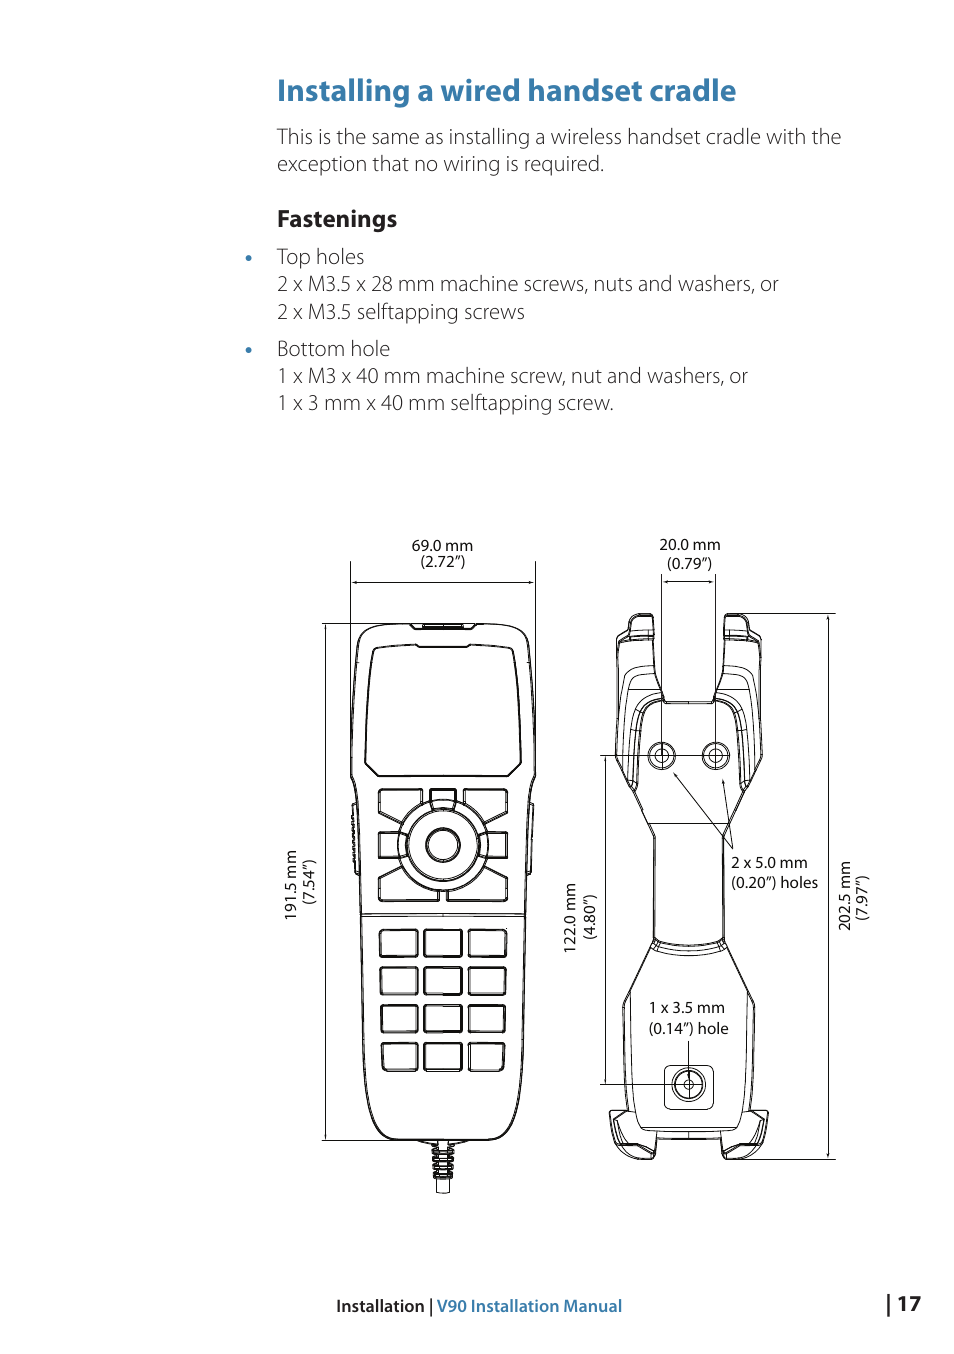 hight resolution of installing a wired handset cradle fastenings b g v90 vhf radio user manual page 17 29